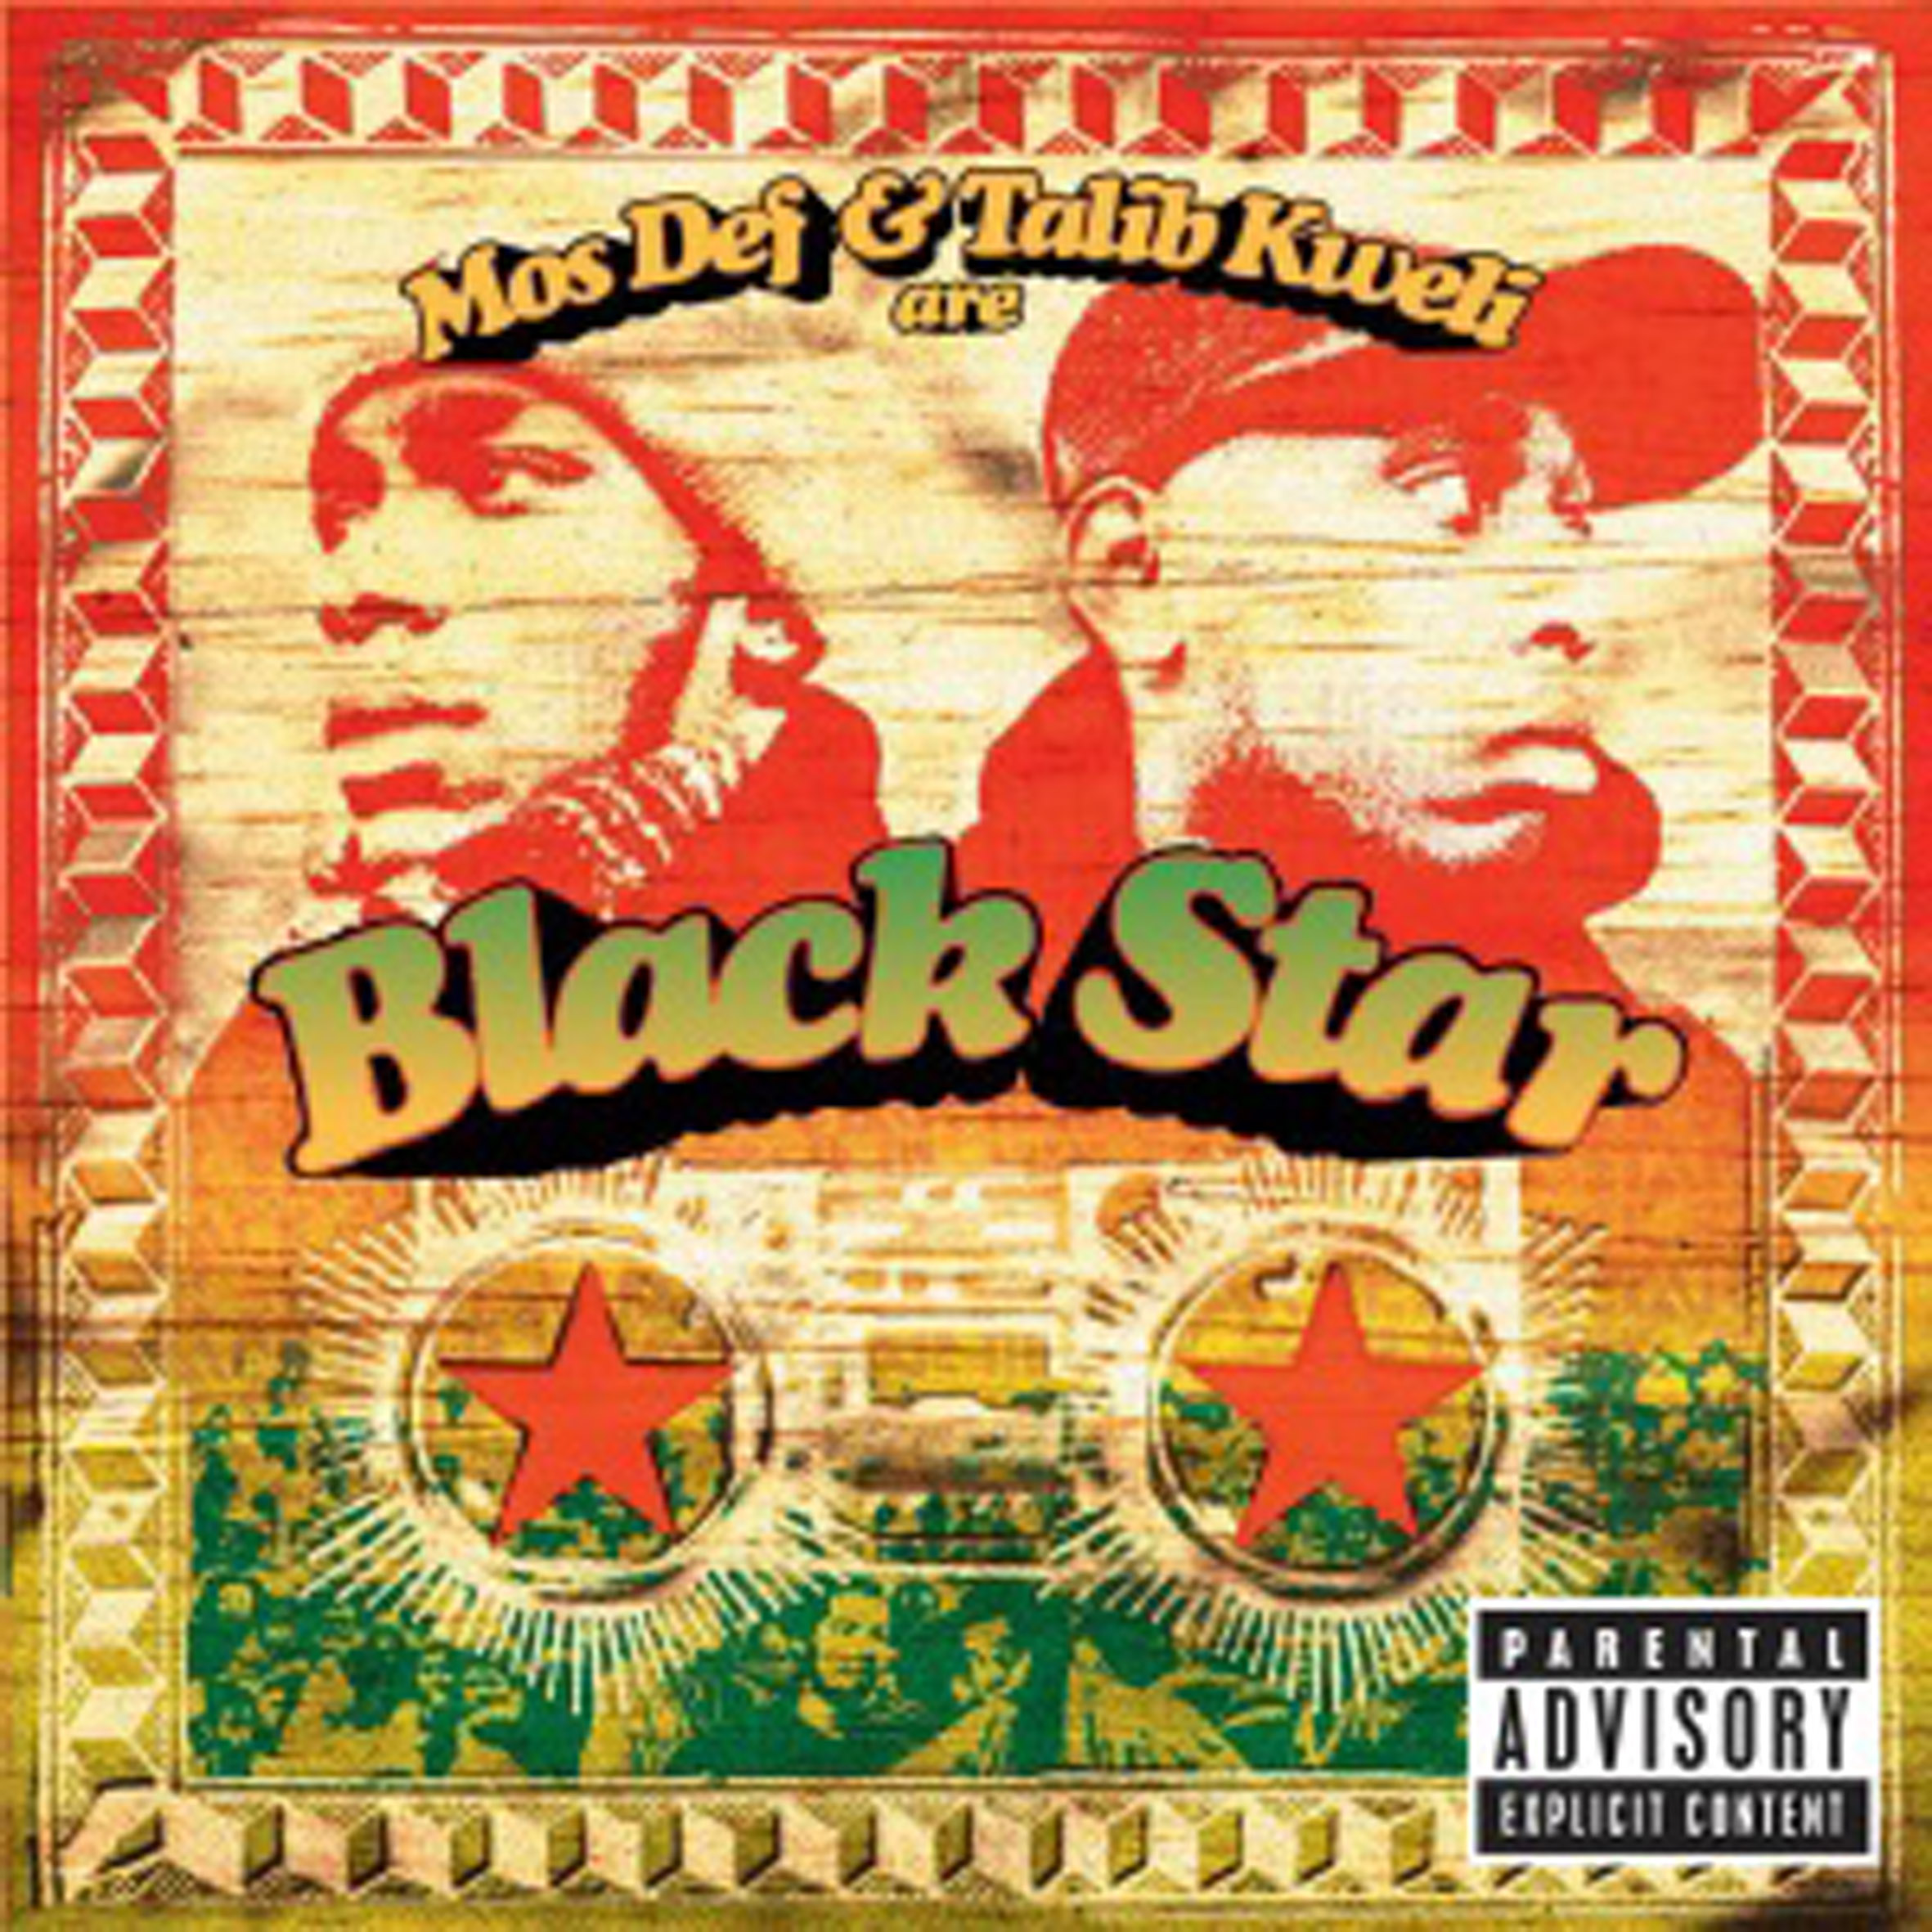 Black Star, Mos Def, Talib Kweli - amazon.com